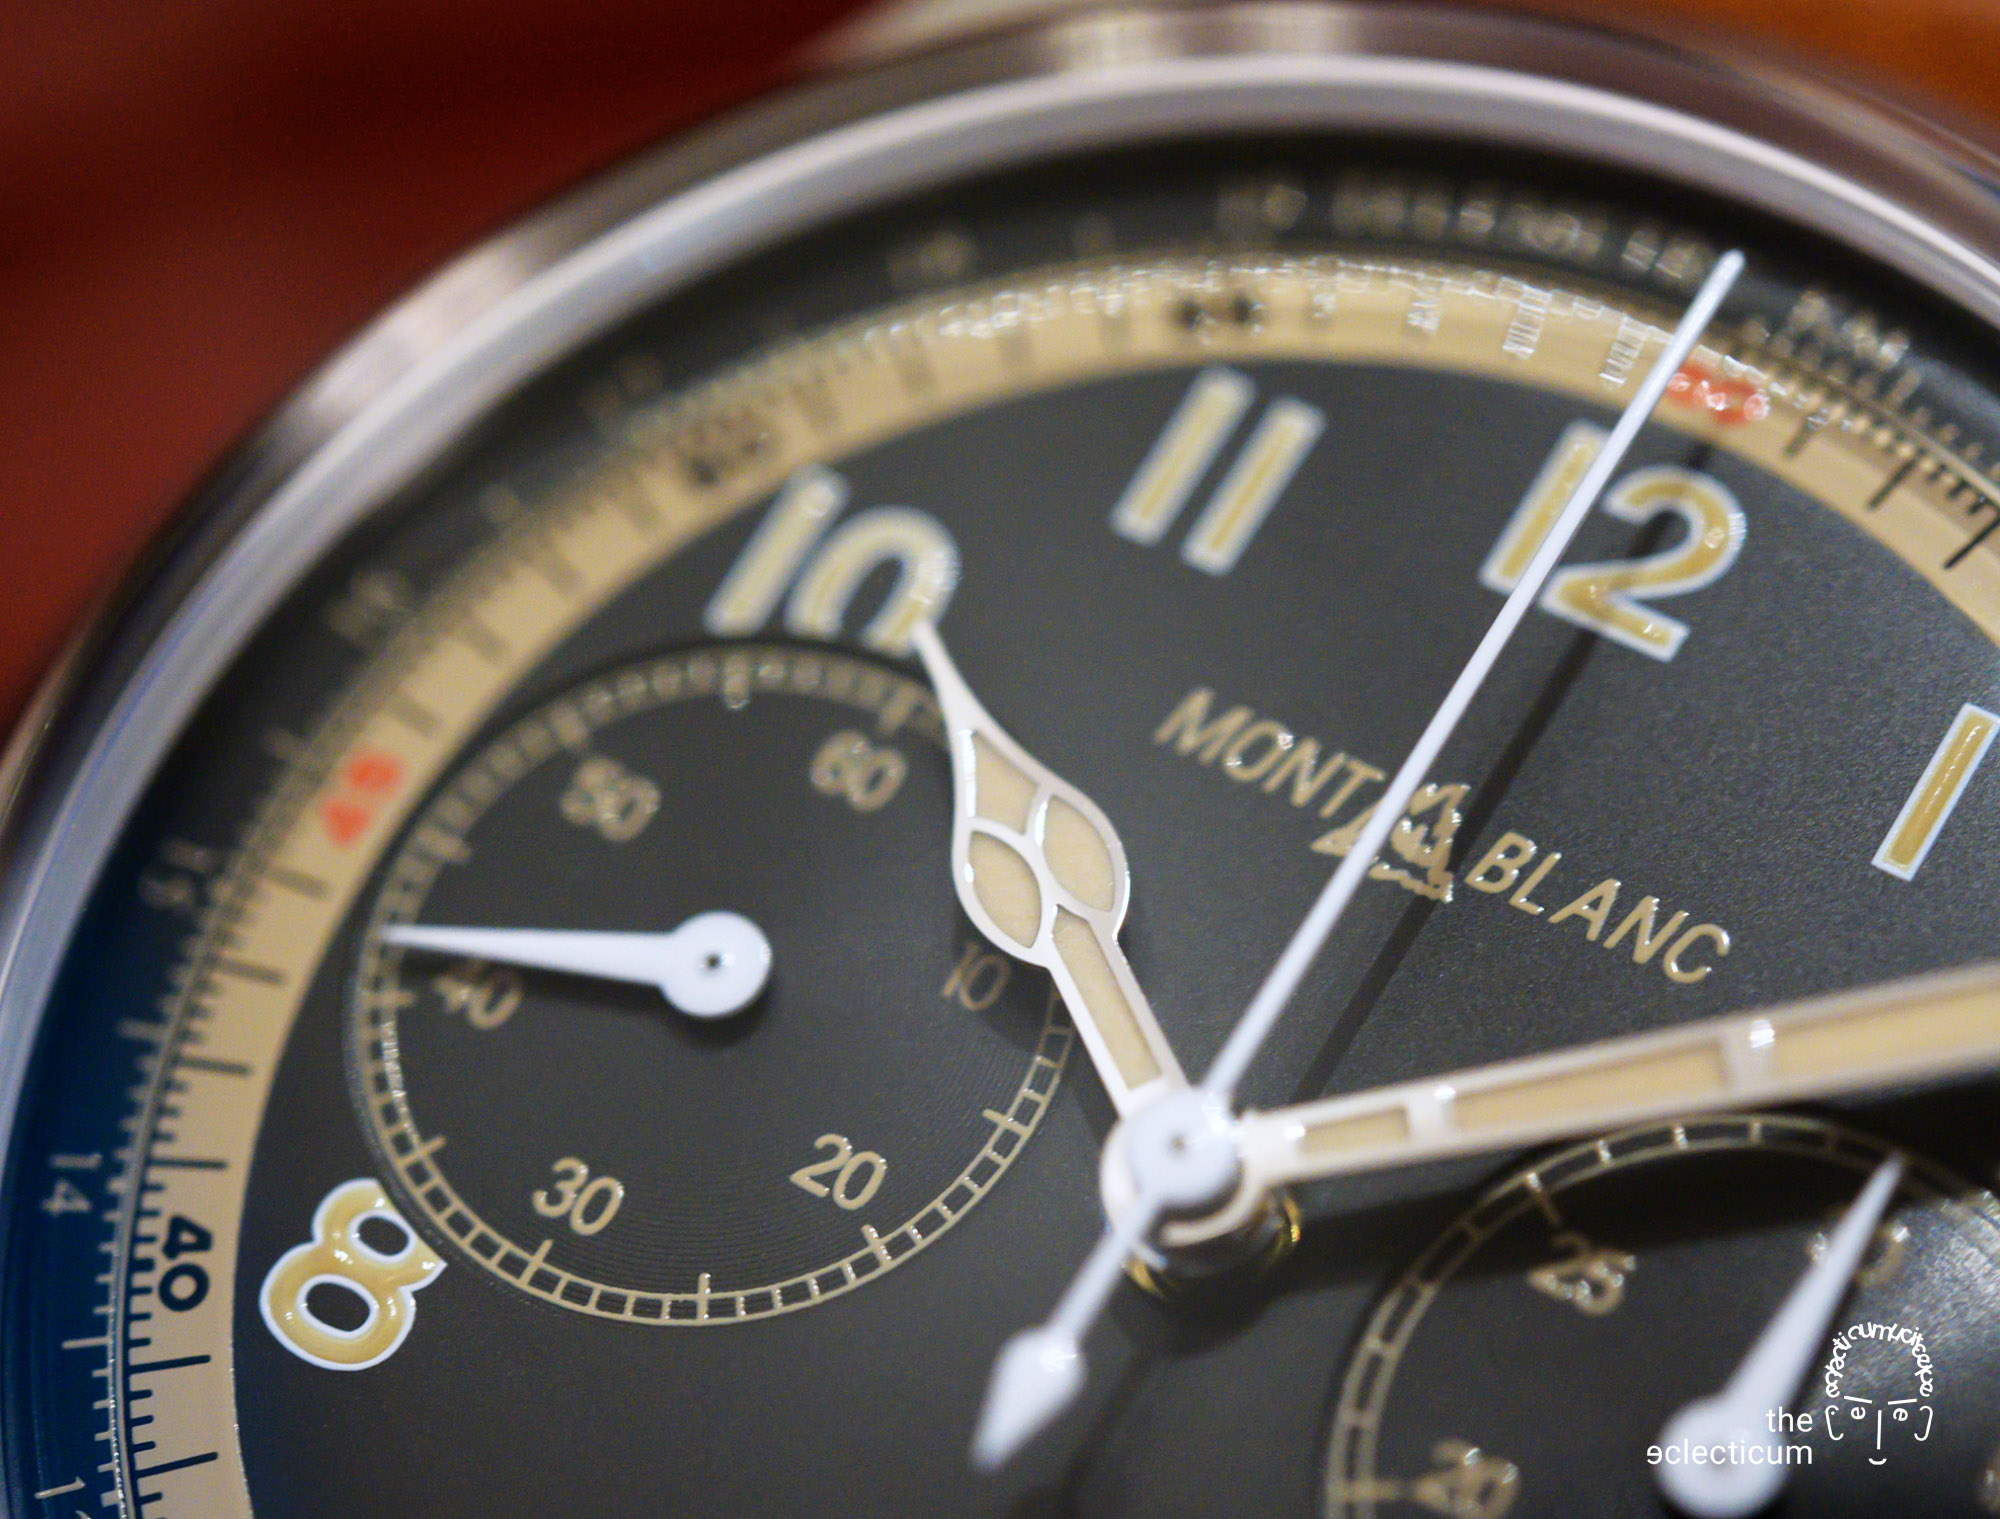 Montblanc 1858 Monopusher Chronograph automatic dial detail